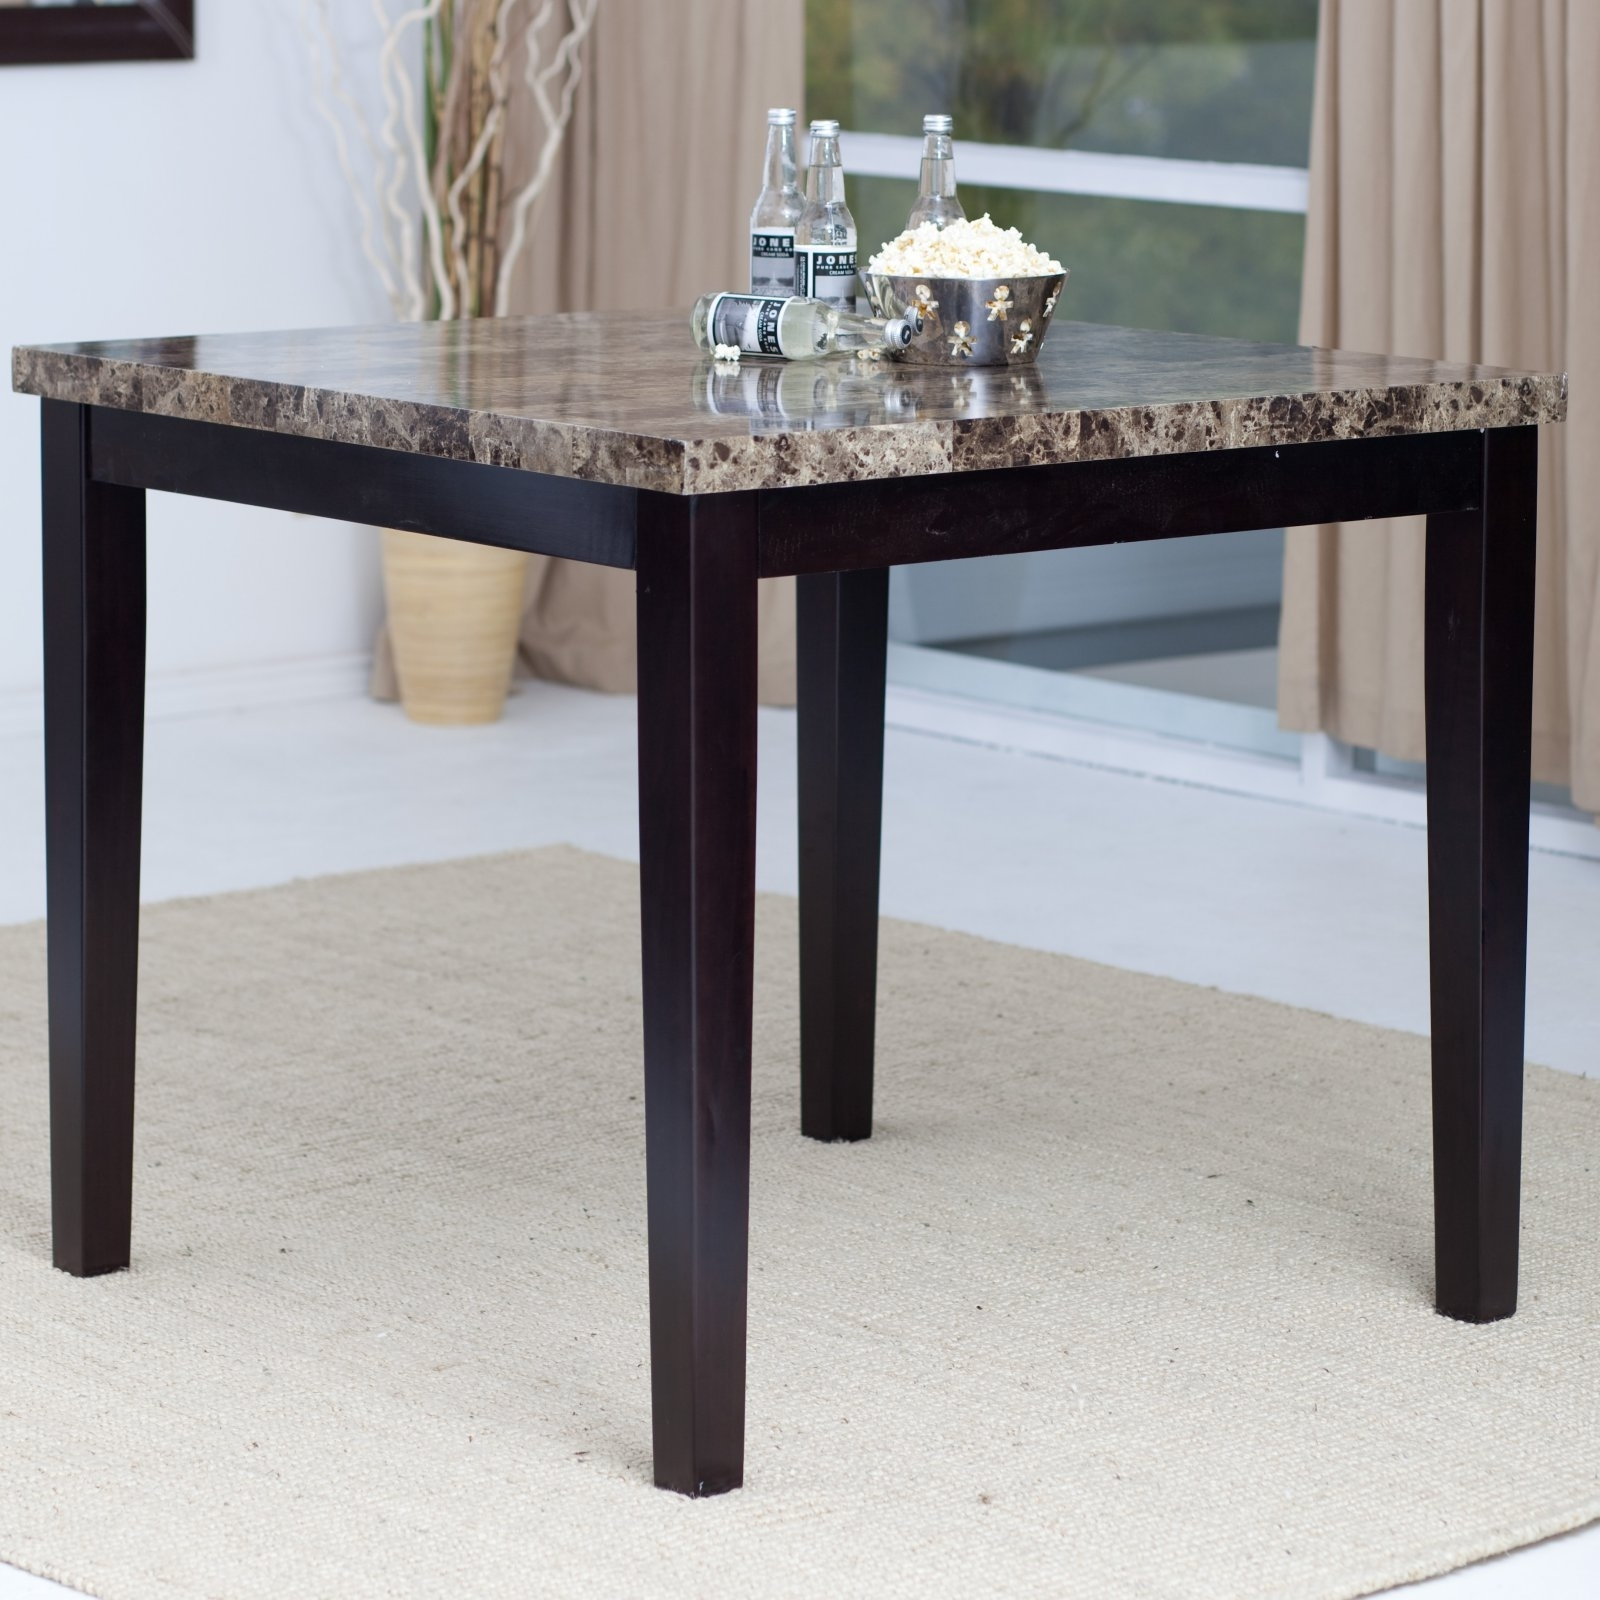 Palazzo Counter Height Dining Table – Walmart In Newest Palazzo Rectangle Dining Tables (View 2 of 20)